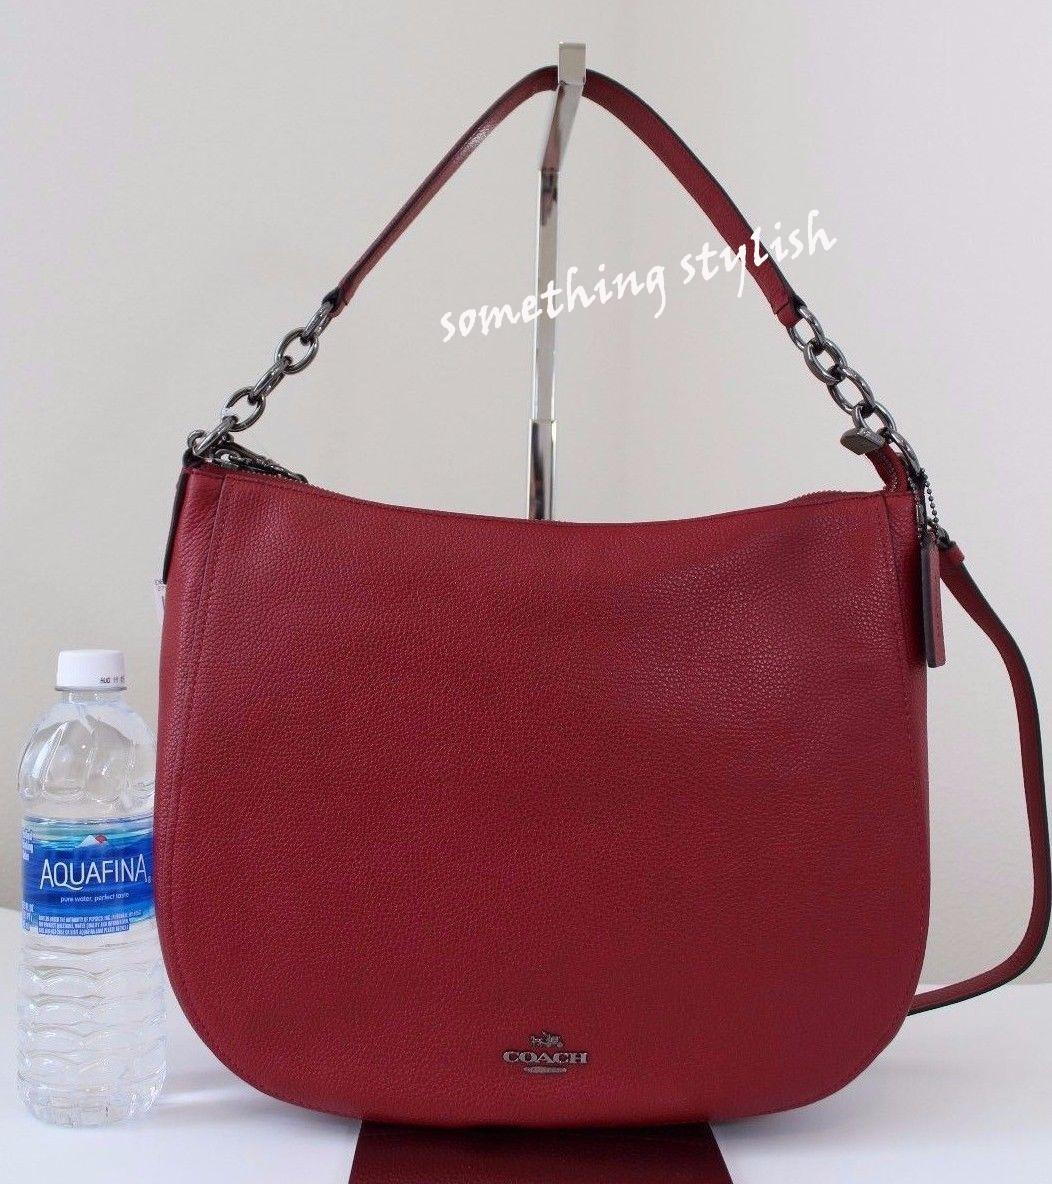 80579f8f144a8 where can i buy lyst coach chelsea hobo 32 in polished pebble leather in  black 4efd6 80b07  italy coach hobo bag. 123456789101112 1dace 99674